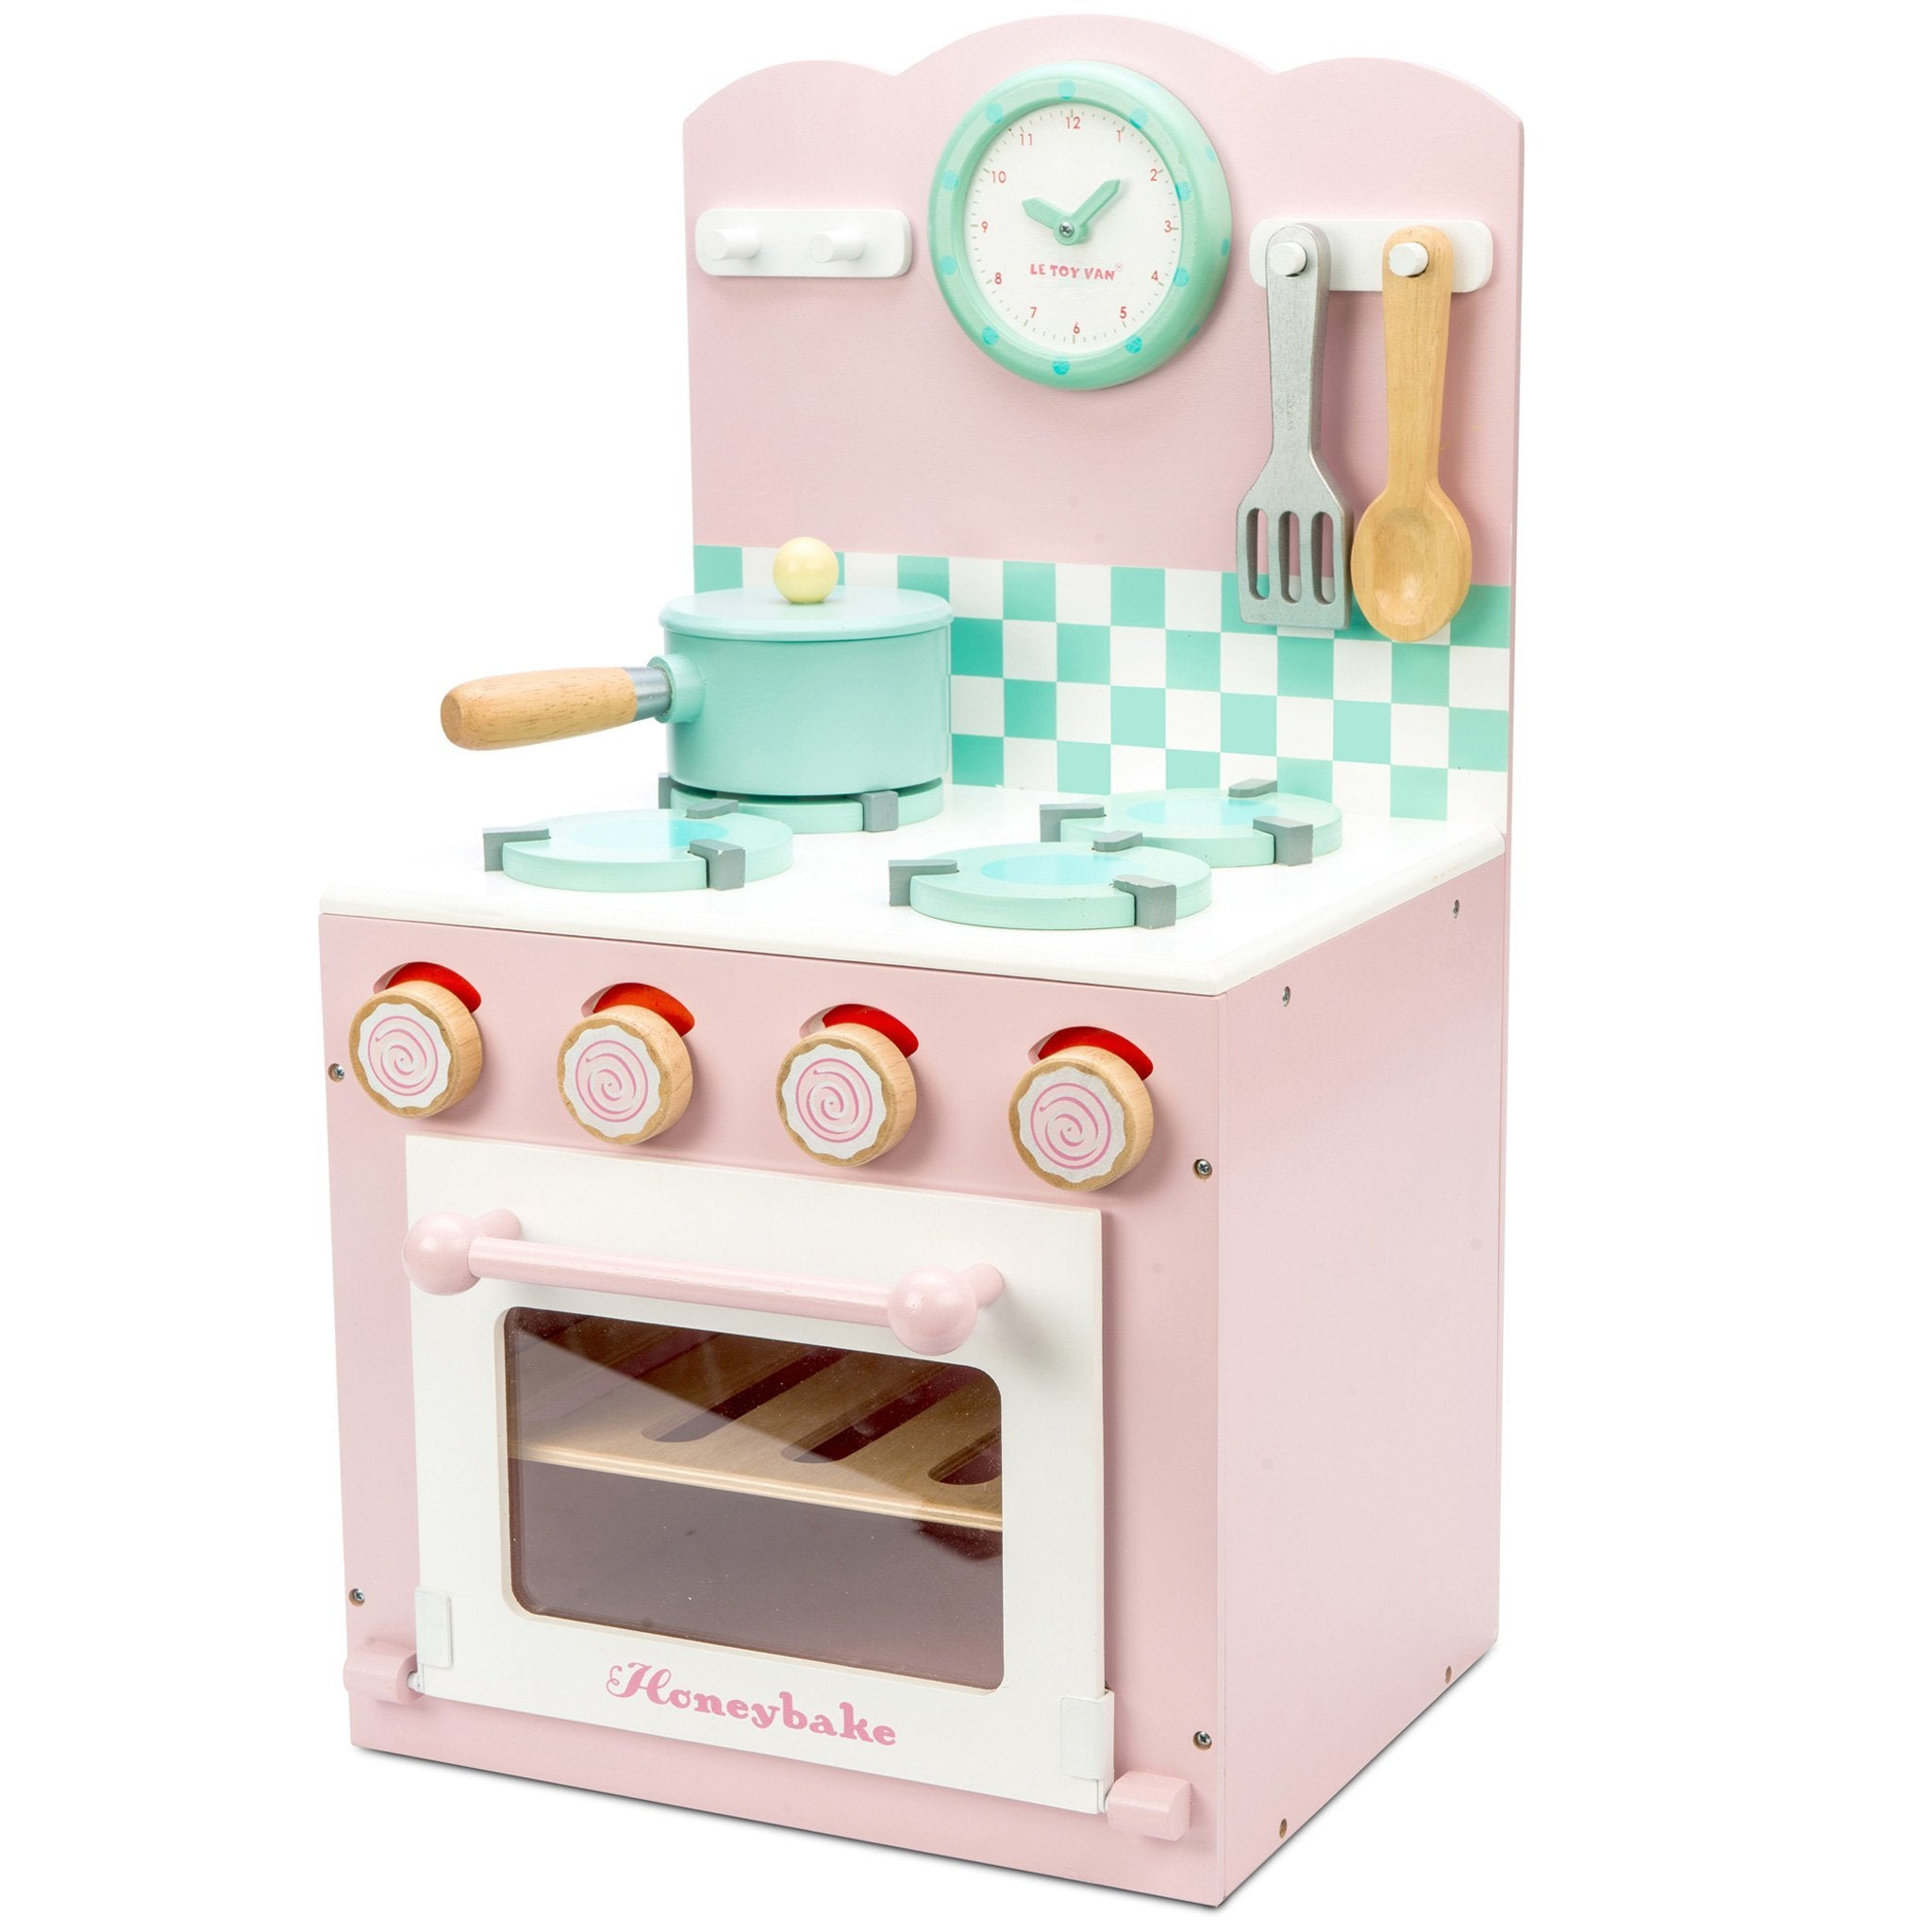 Le Toy Van Pink Oven and Hob Le Toy Van Toy Kitchens & Play Food at Little Earth Nest Eco Shop